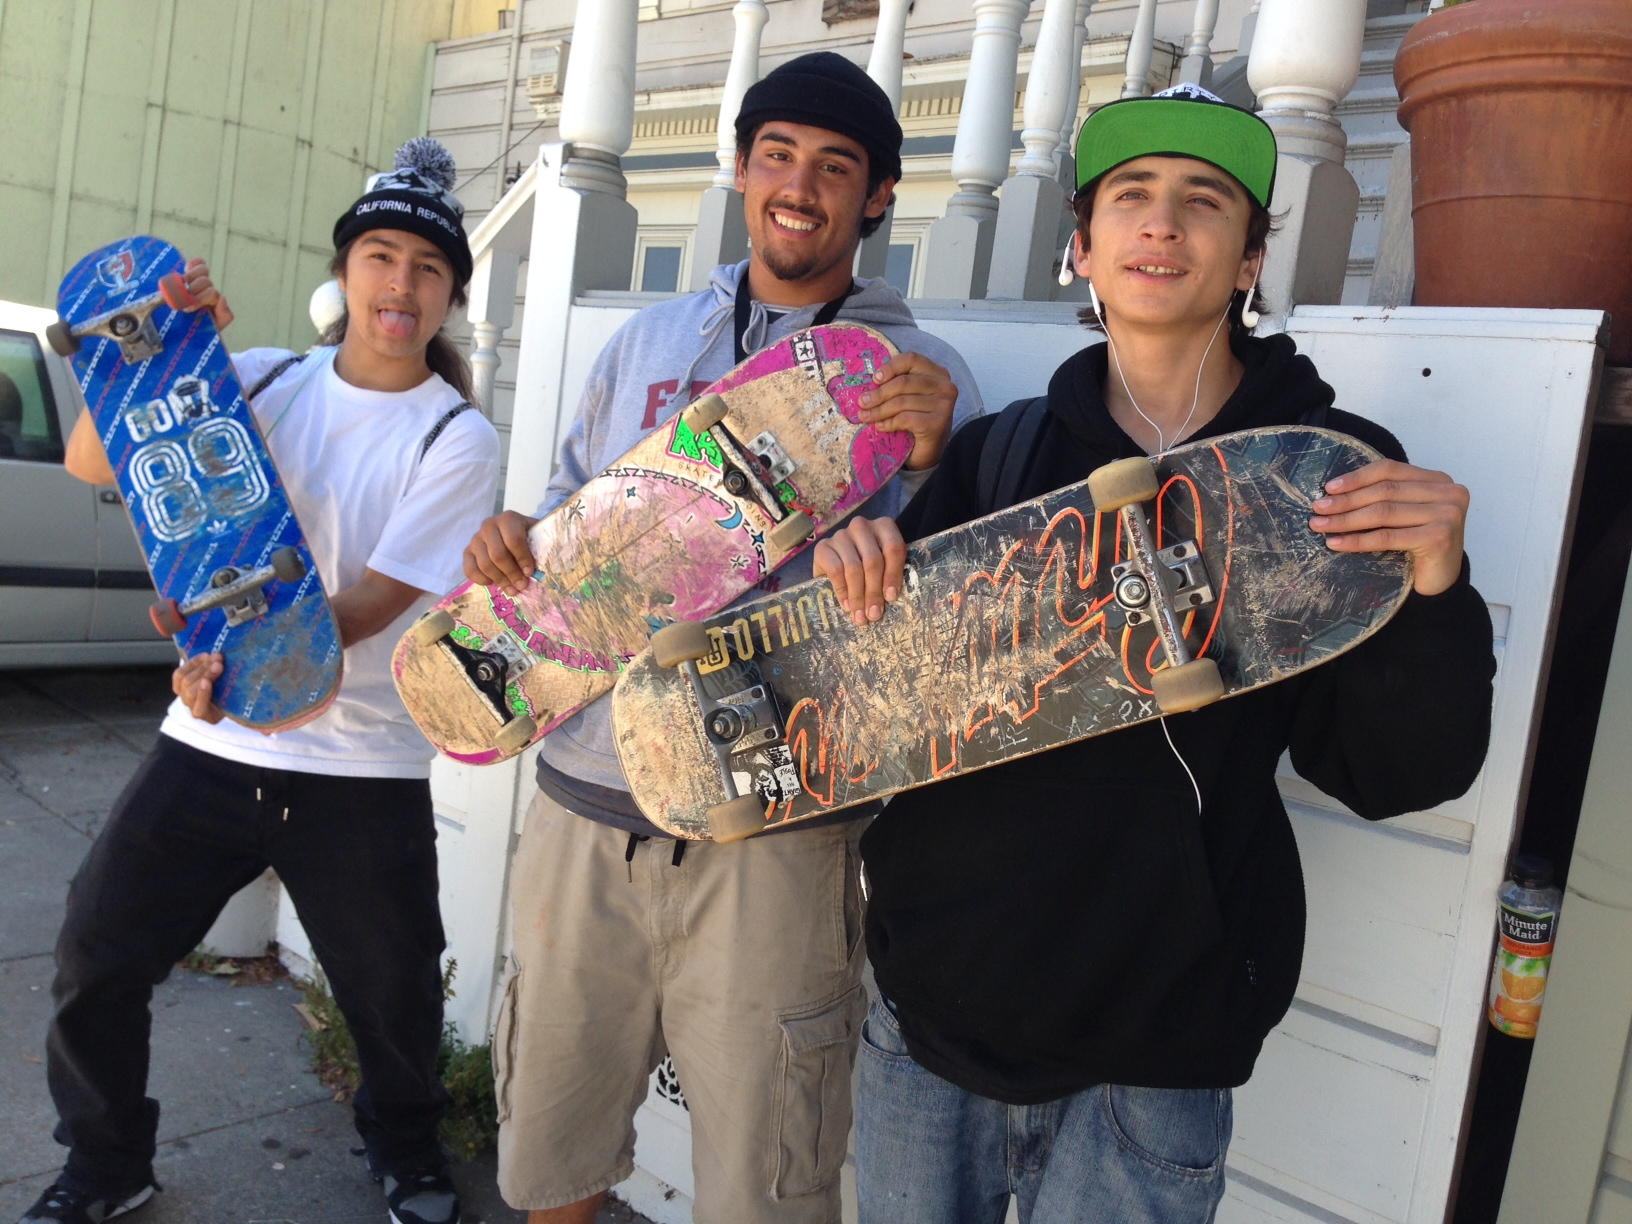 Locals Rate the New Mission Skate Park